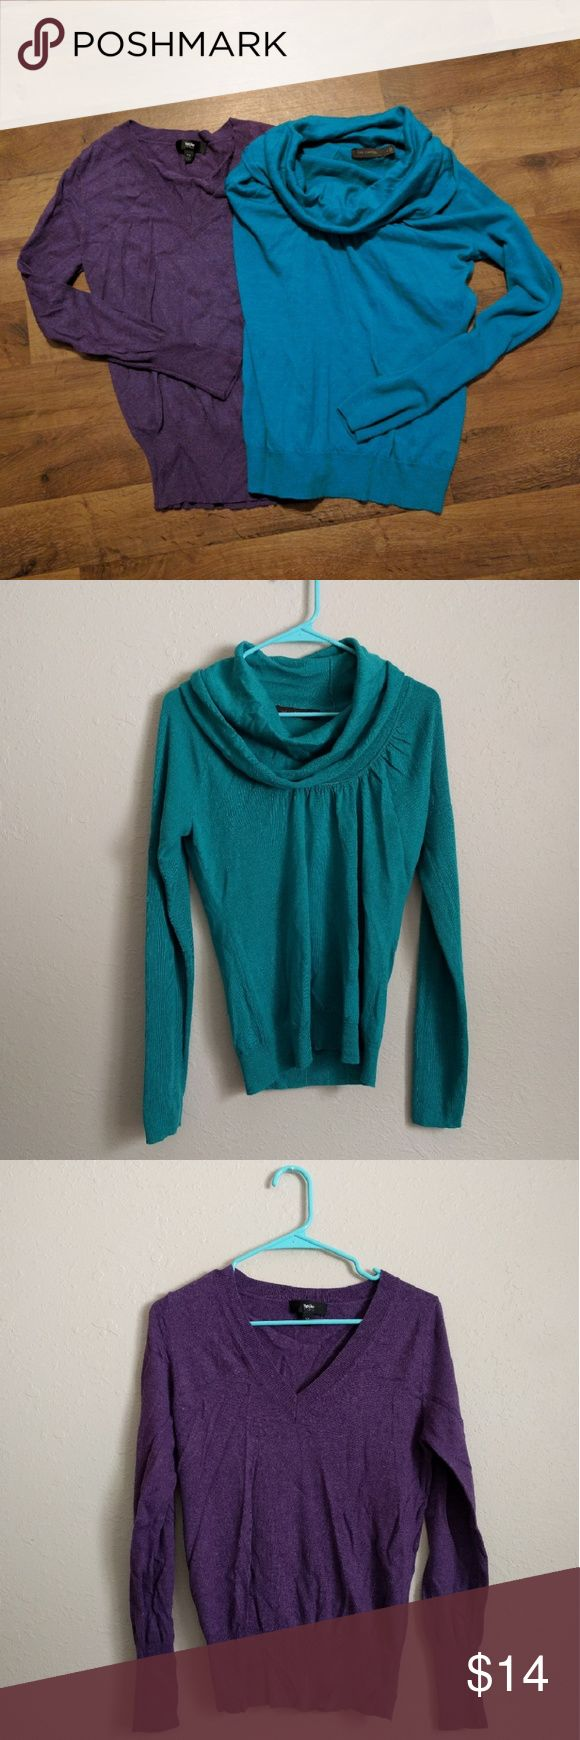 """Sale bundle of 2 colorful sweaters Bundle of 2 sweaters. Purple mossimo sweater and teal The Limited cowl neck sweater. No notable flaws. #sweater #bundle #sale #clearance #winter #warm   Brand: purple is Mossimo, teal is The Limited Size: purple size med, teal size large (but fits like medium) Measurements: purple chest 16"""" across, length 24"""". Teal chest 17"""" across, length 24""""  {Please ask for any pictures or measurements. Prices negotiable. I love doing cheap bundles on multiple items…"""